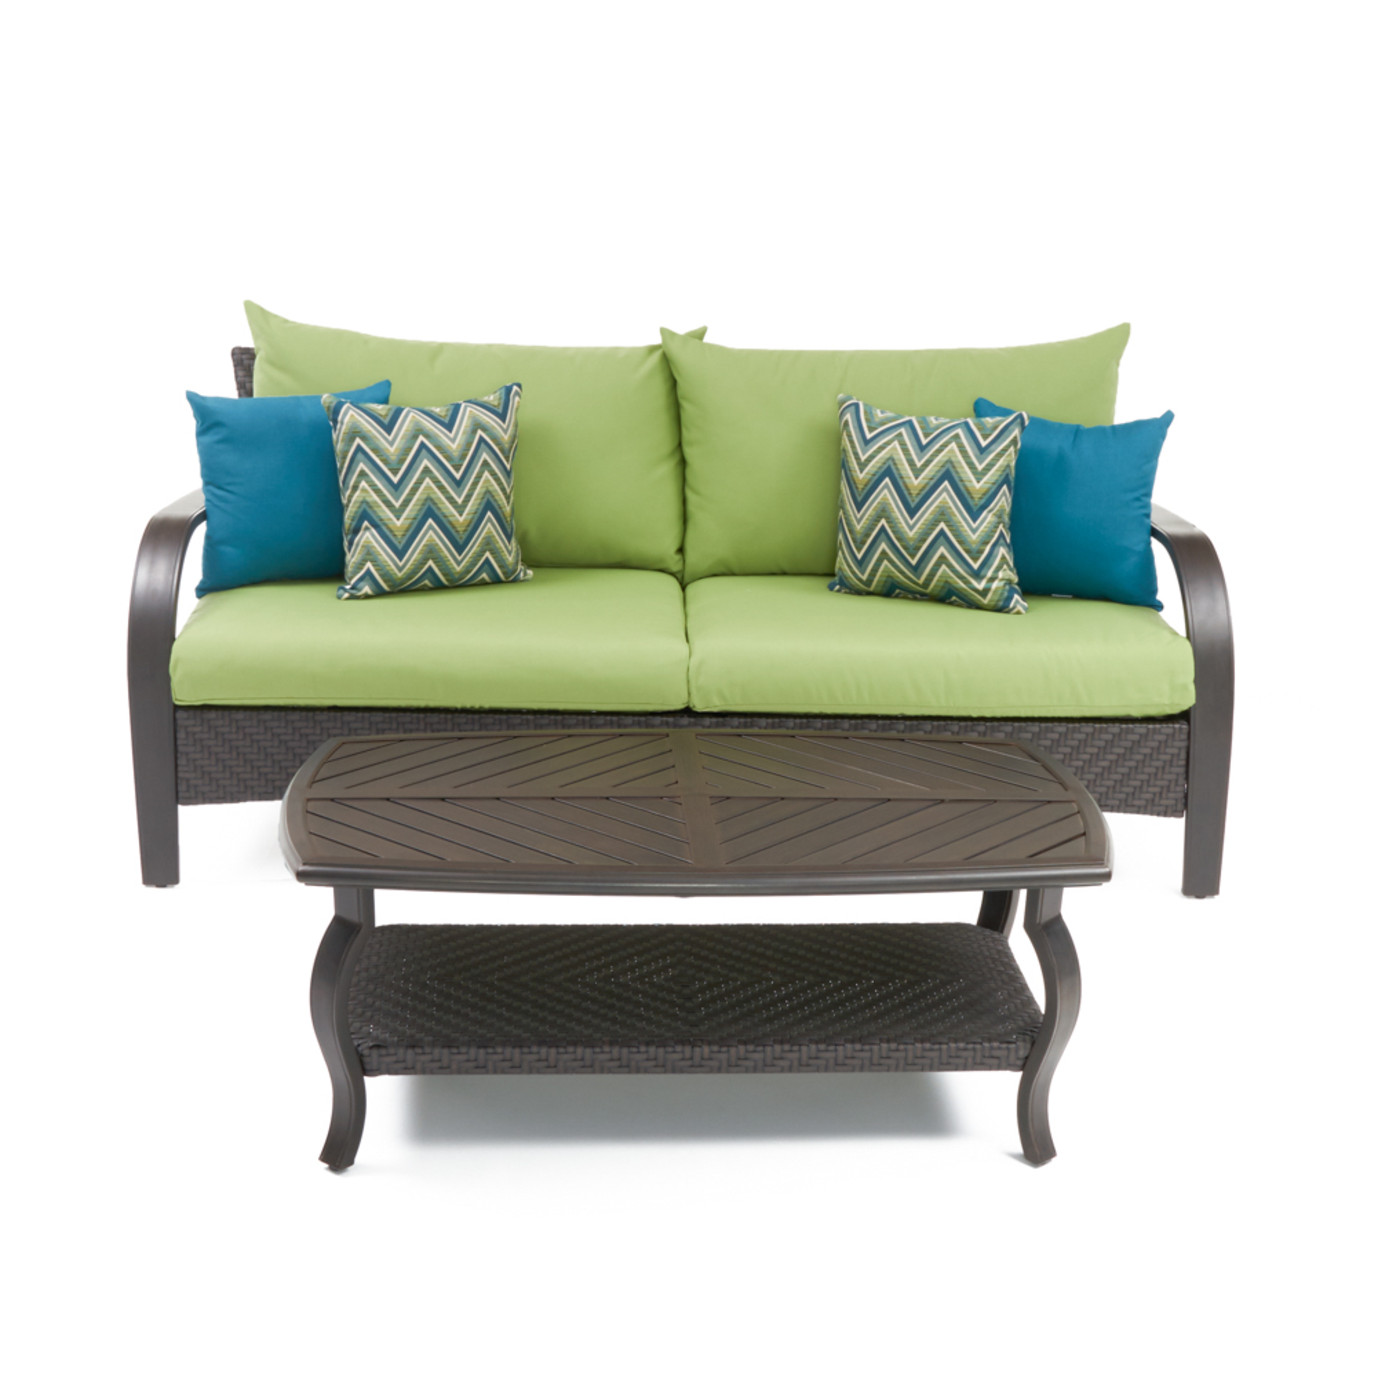 Barcelo™ Sofa & Coffee Table - Ginkgo Green